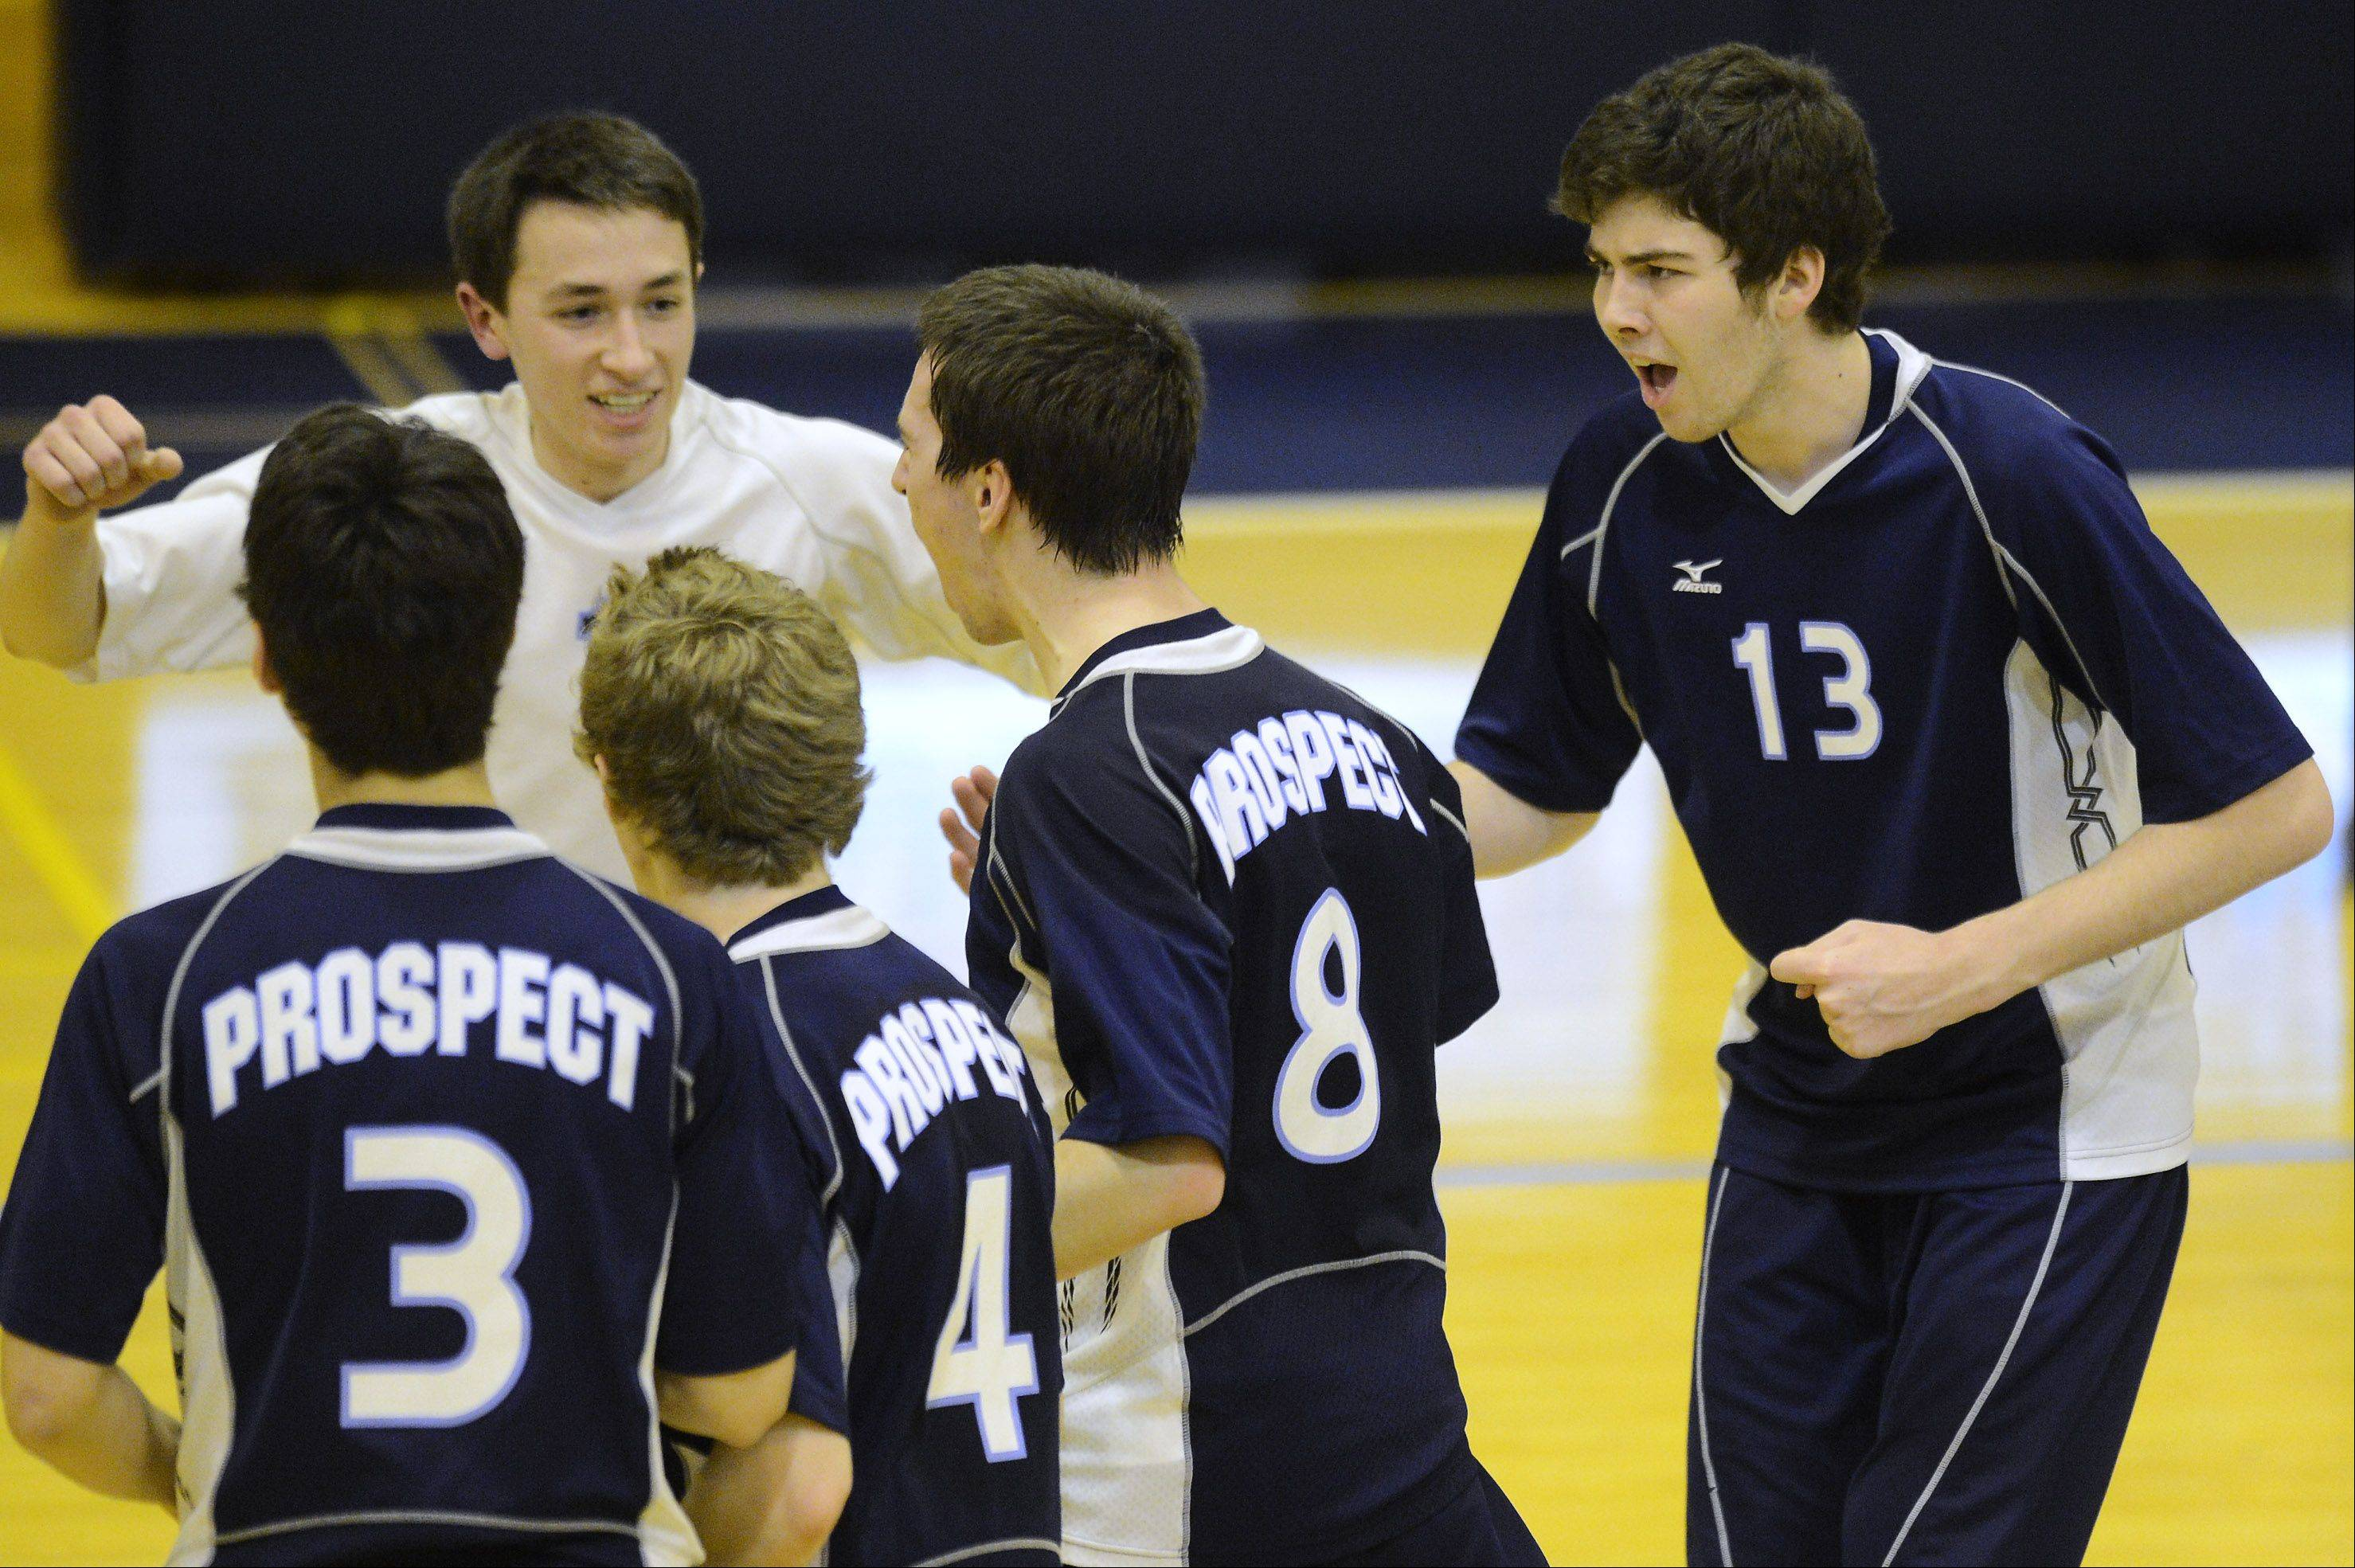 The Prospect boys volleyball team, including, in white, Ryan Maloney, and Kyle Formanski, right, and Jacob Schwister (3), Mark Mir (4), and Curtis Glennon (8) celebrates its victory over Buffalo Grove on Tuesday.